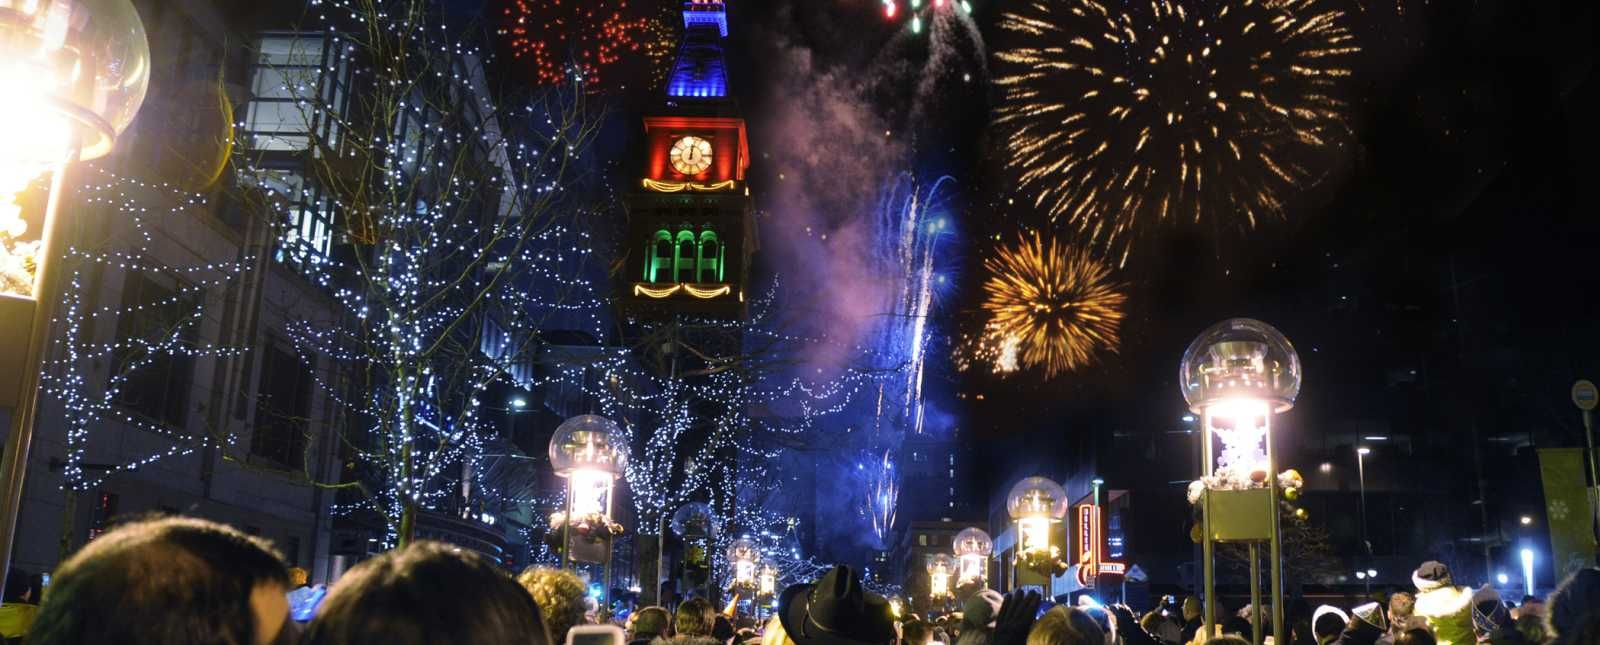 New Year'sEeve firework show in downtown Denver. newyear